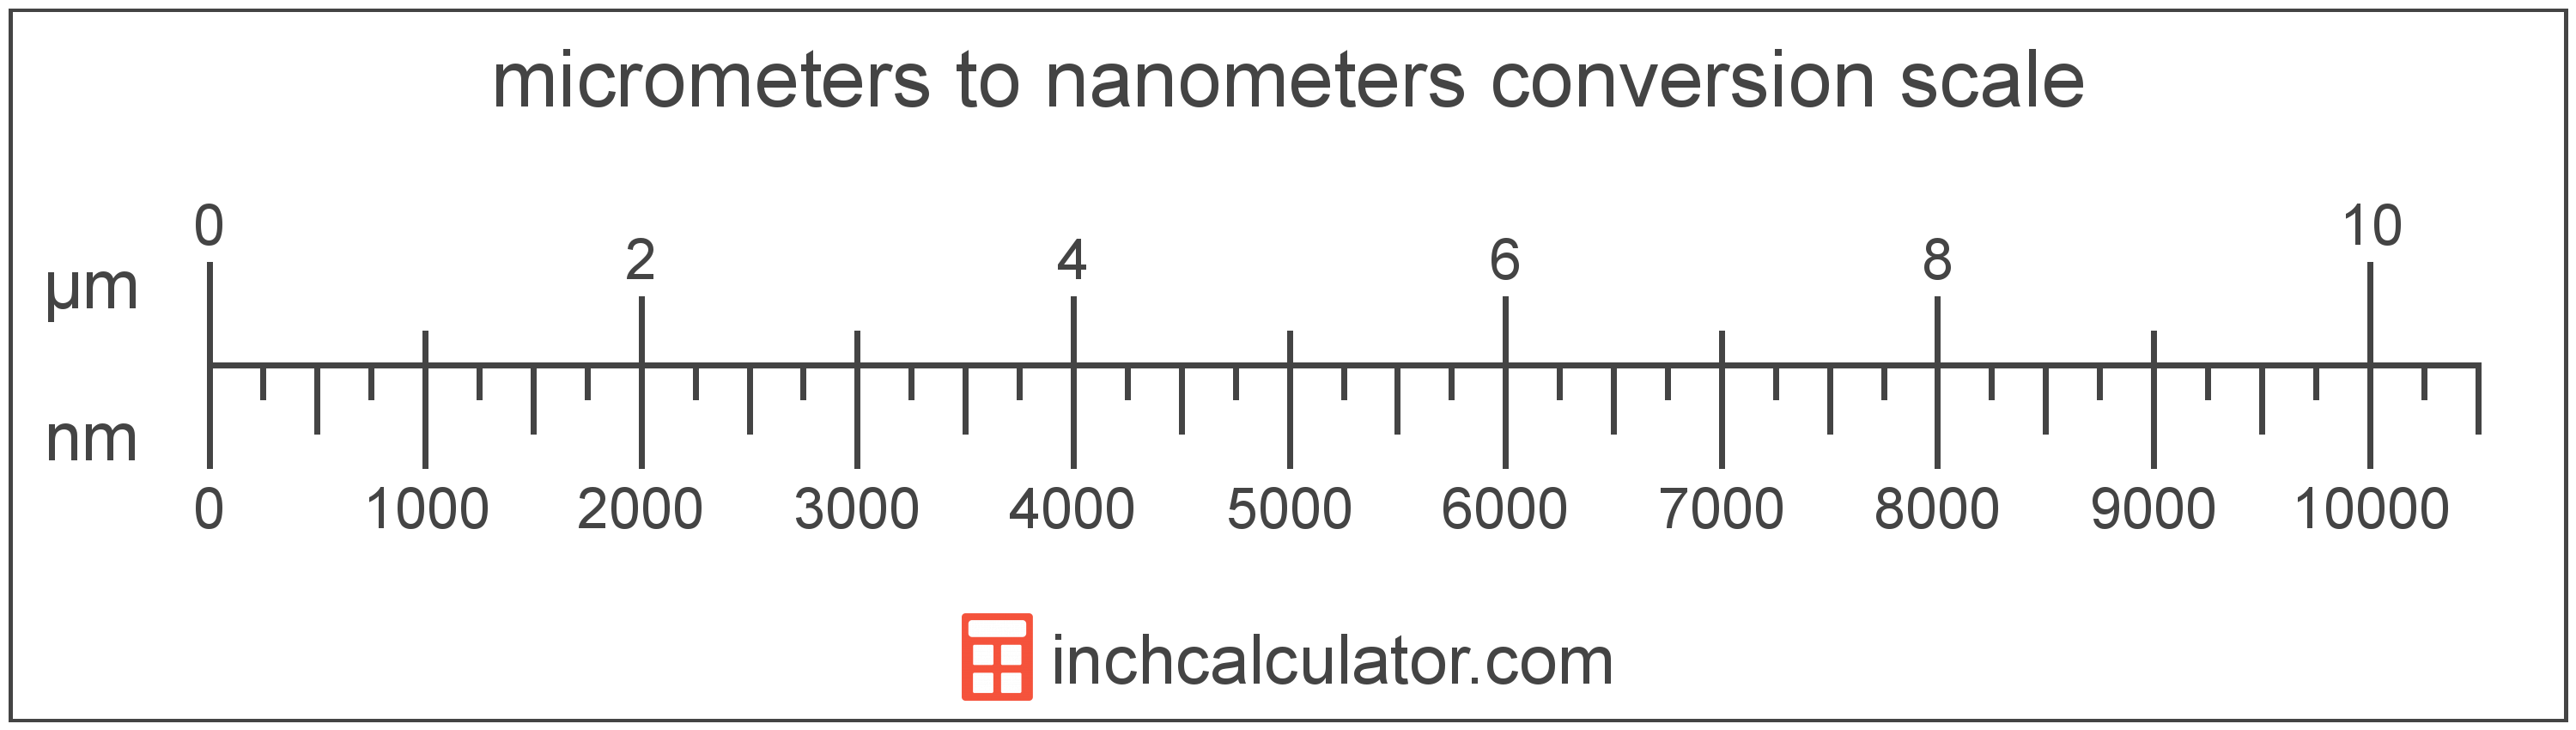 conversion scale showing micrometers and equivalent nanometers length values